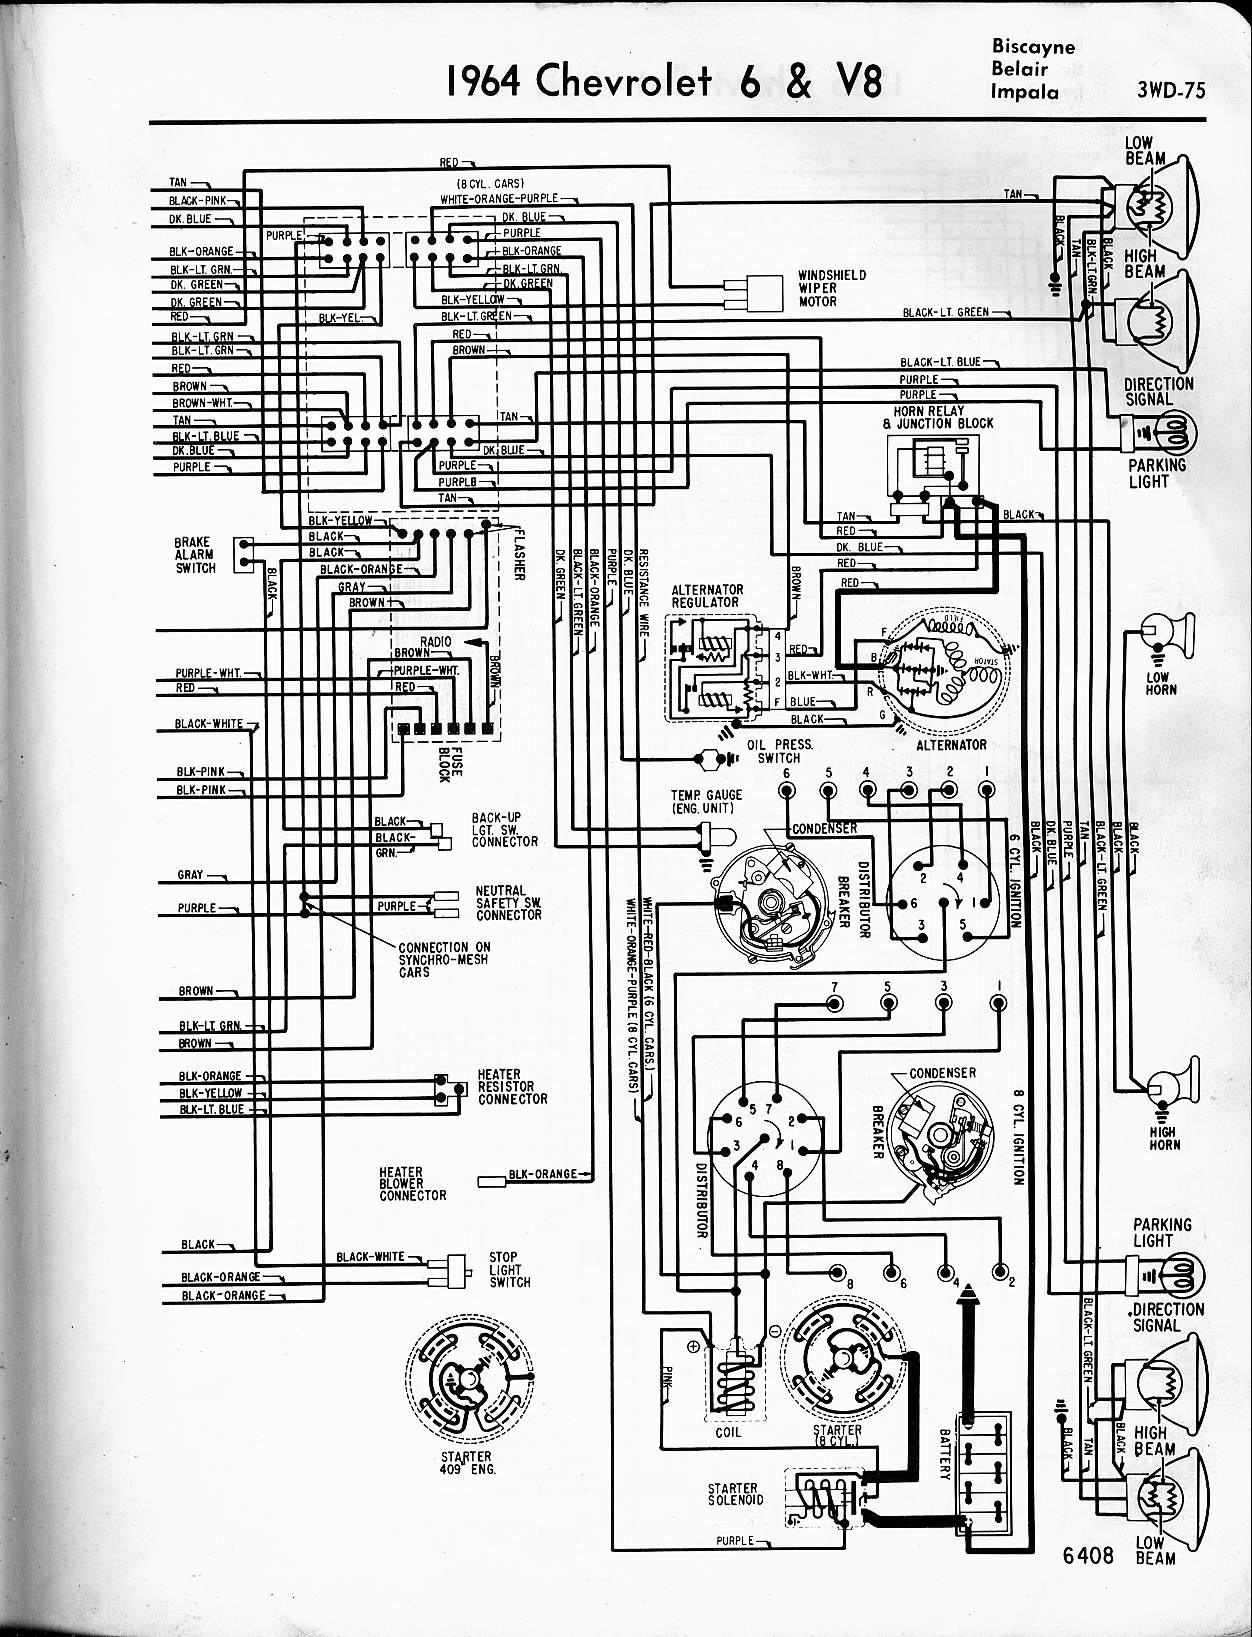 2001 Chevy Express Fuse Diagram Wiring Library 2006 Hhr Box 1964 Impala Panel Basic U2022 Rh Rnetcomputer Co 1991 S10